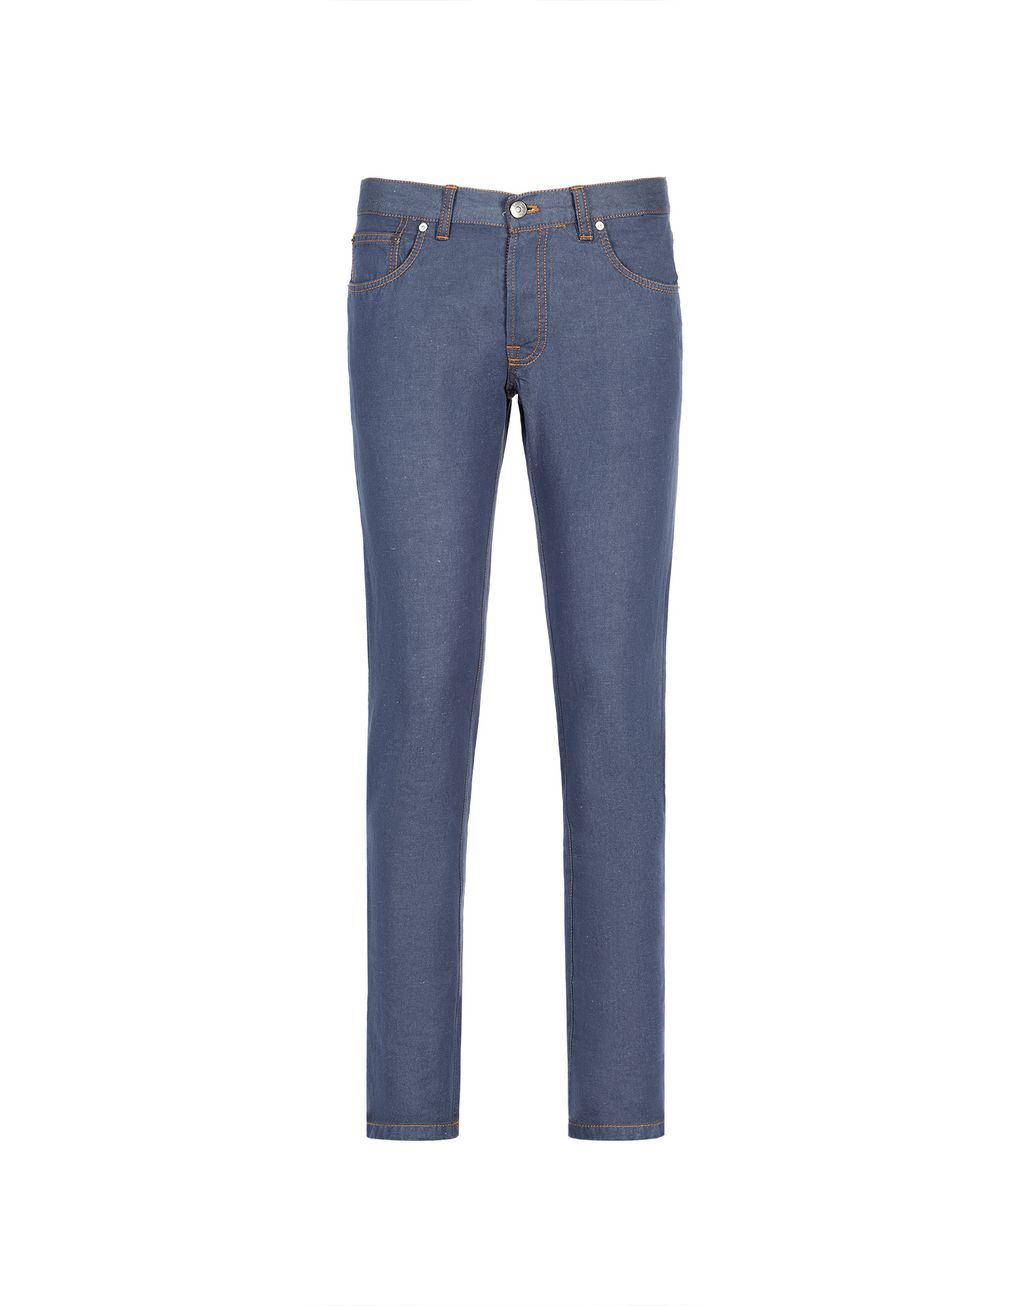 BRIONI Bluette Slim-Fit Cotton and Linen Aneto Jeans  Denim Man f